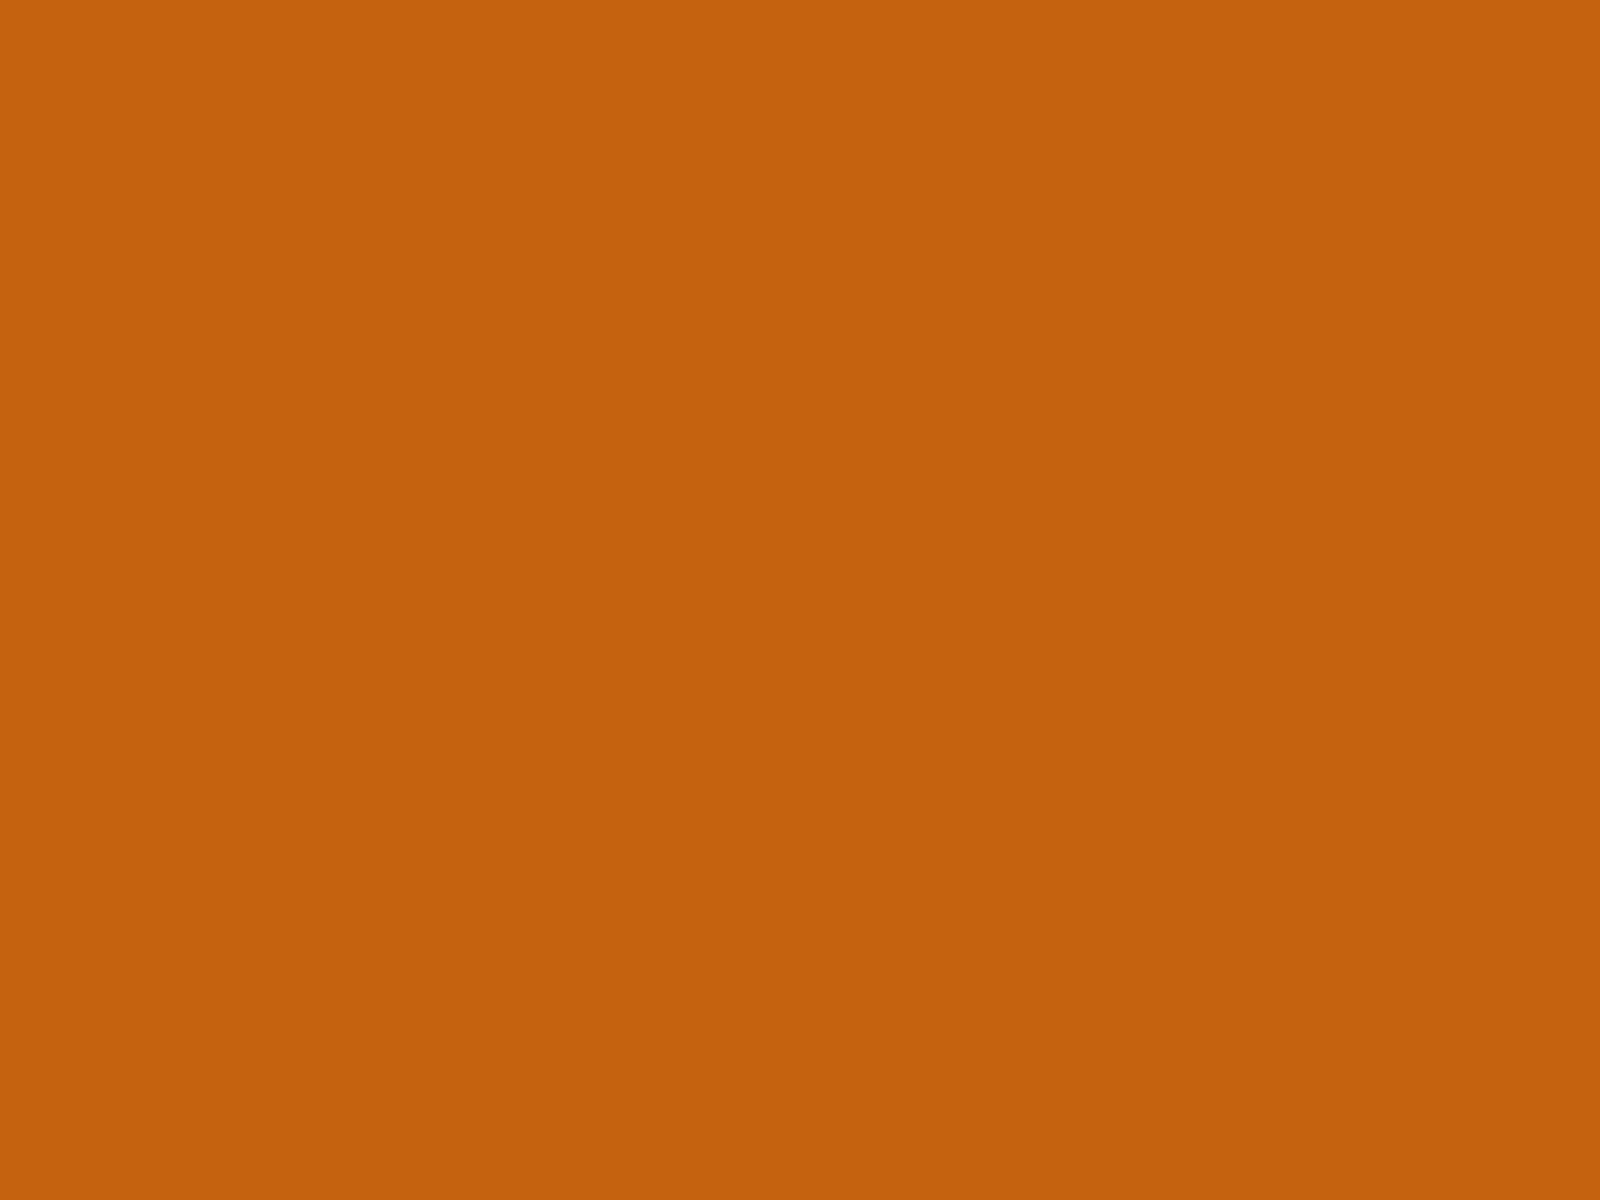 1600x1200 Alloy Orange Solid Color Background